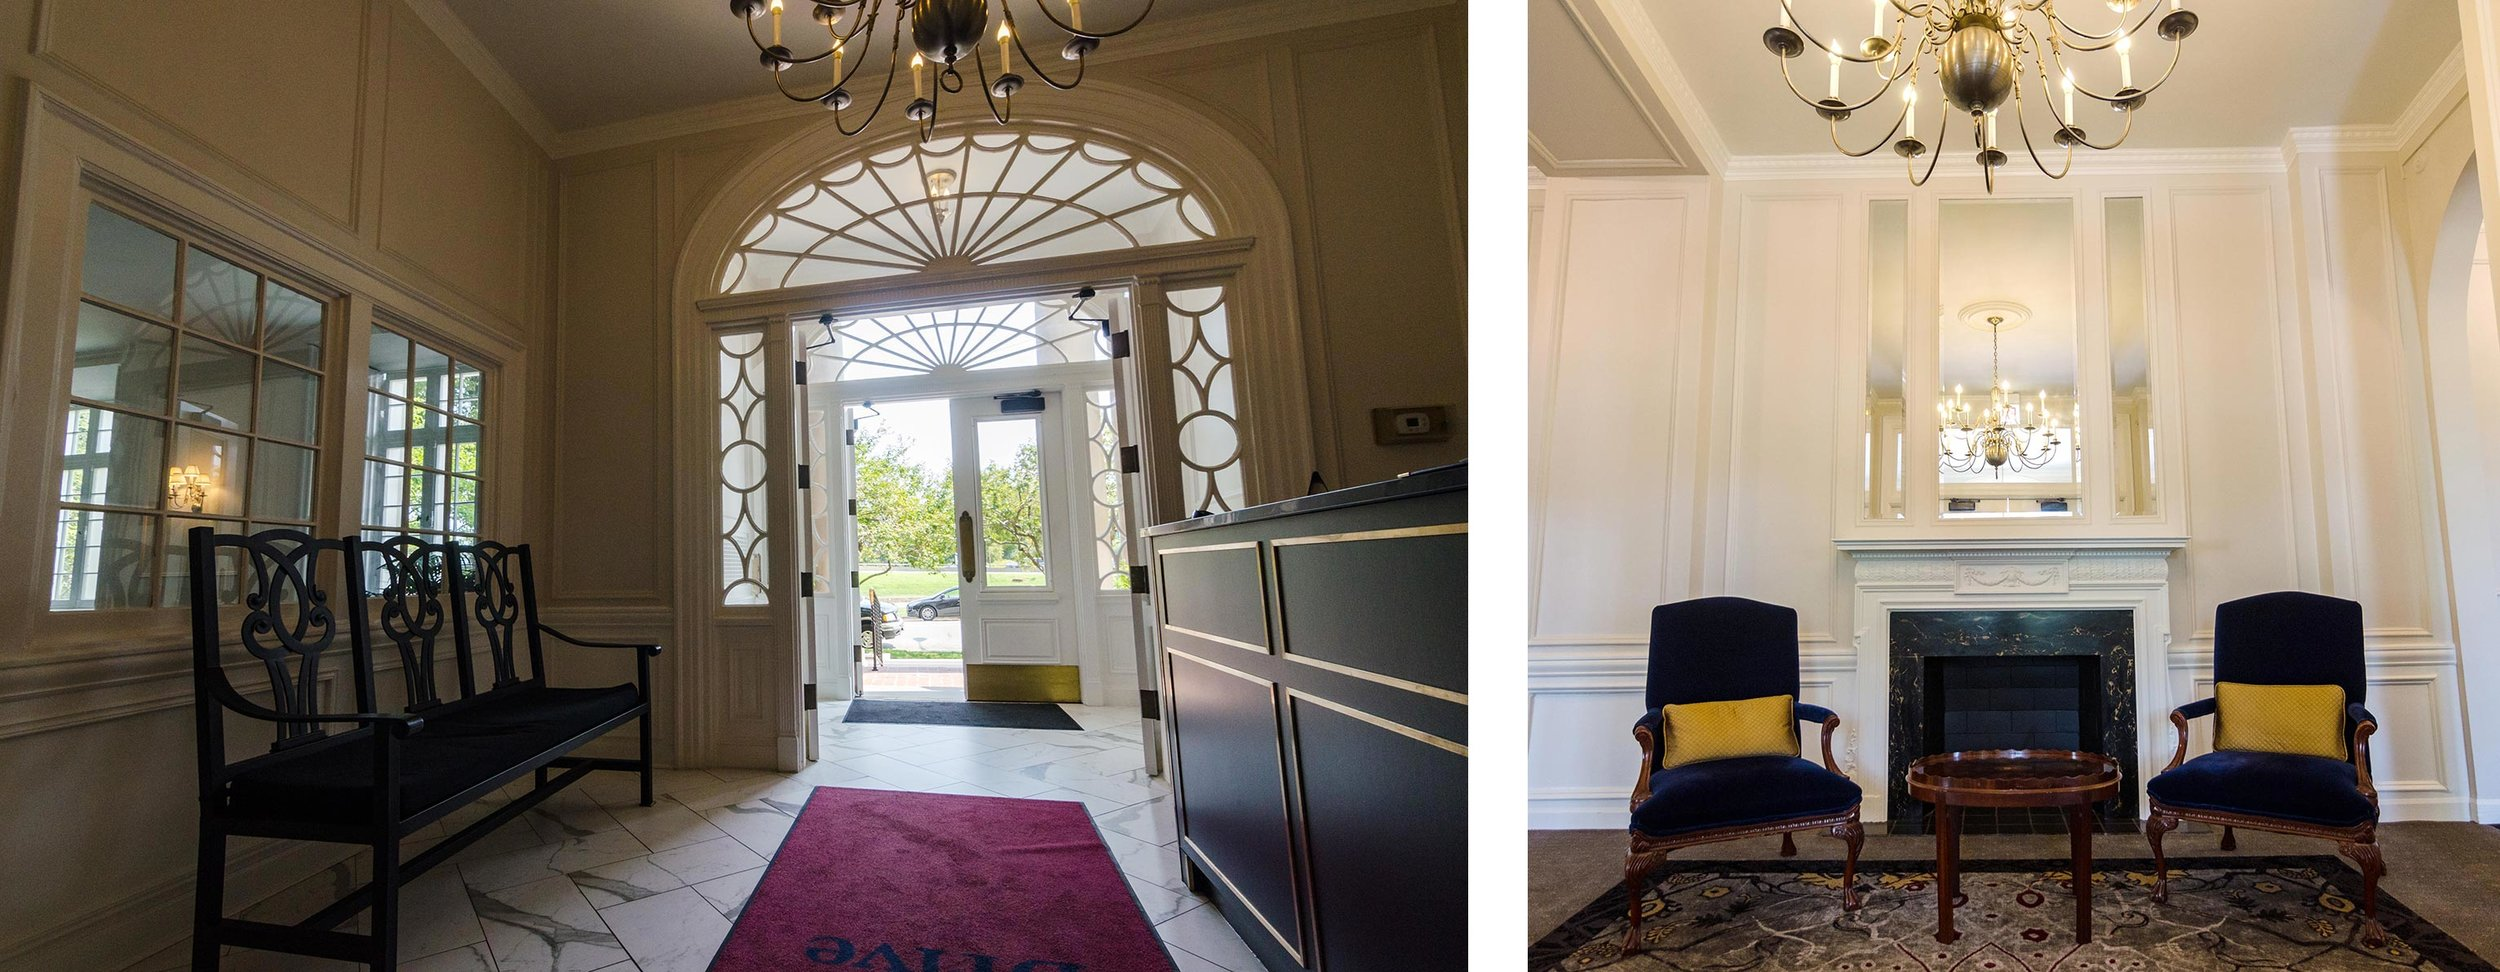 Left: View of interior doorway with fanlight window and sidelights. Right: Foyer. Photos by Eric Allix Rogers.